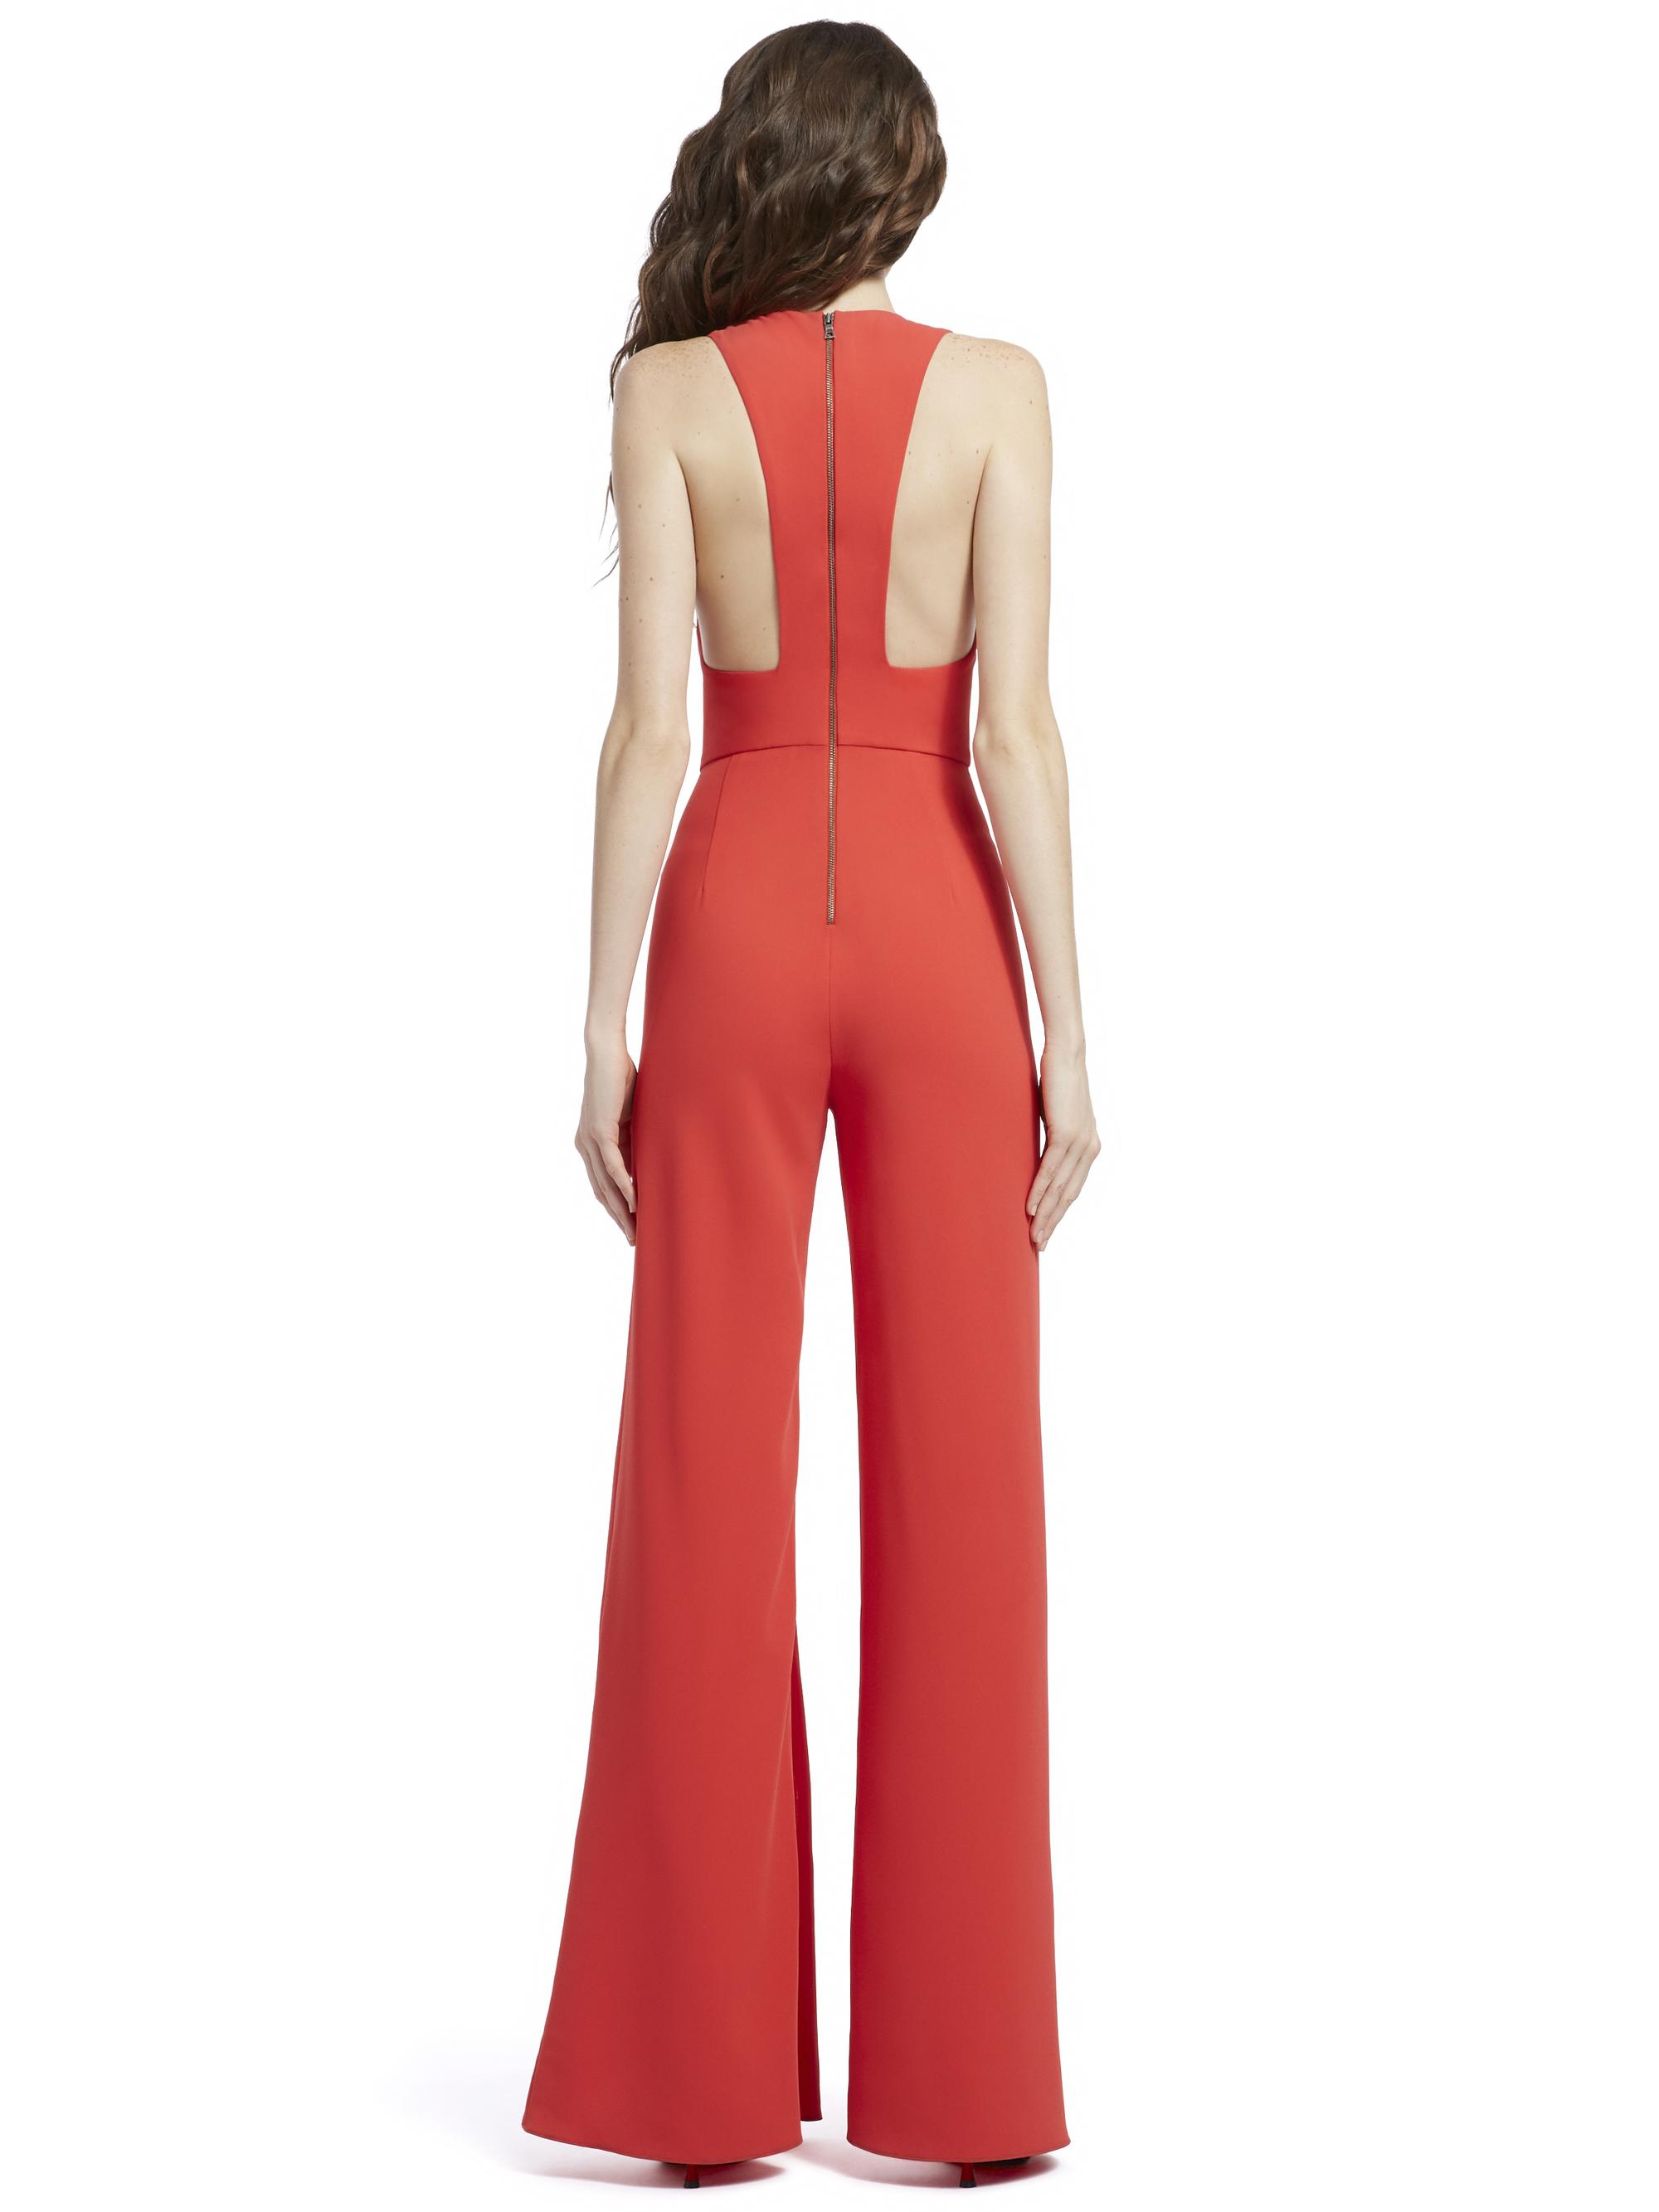 02e6d250aff8 Lyst - Alice + Olivia Maxie Ruffled Jumpsuit in Red